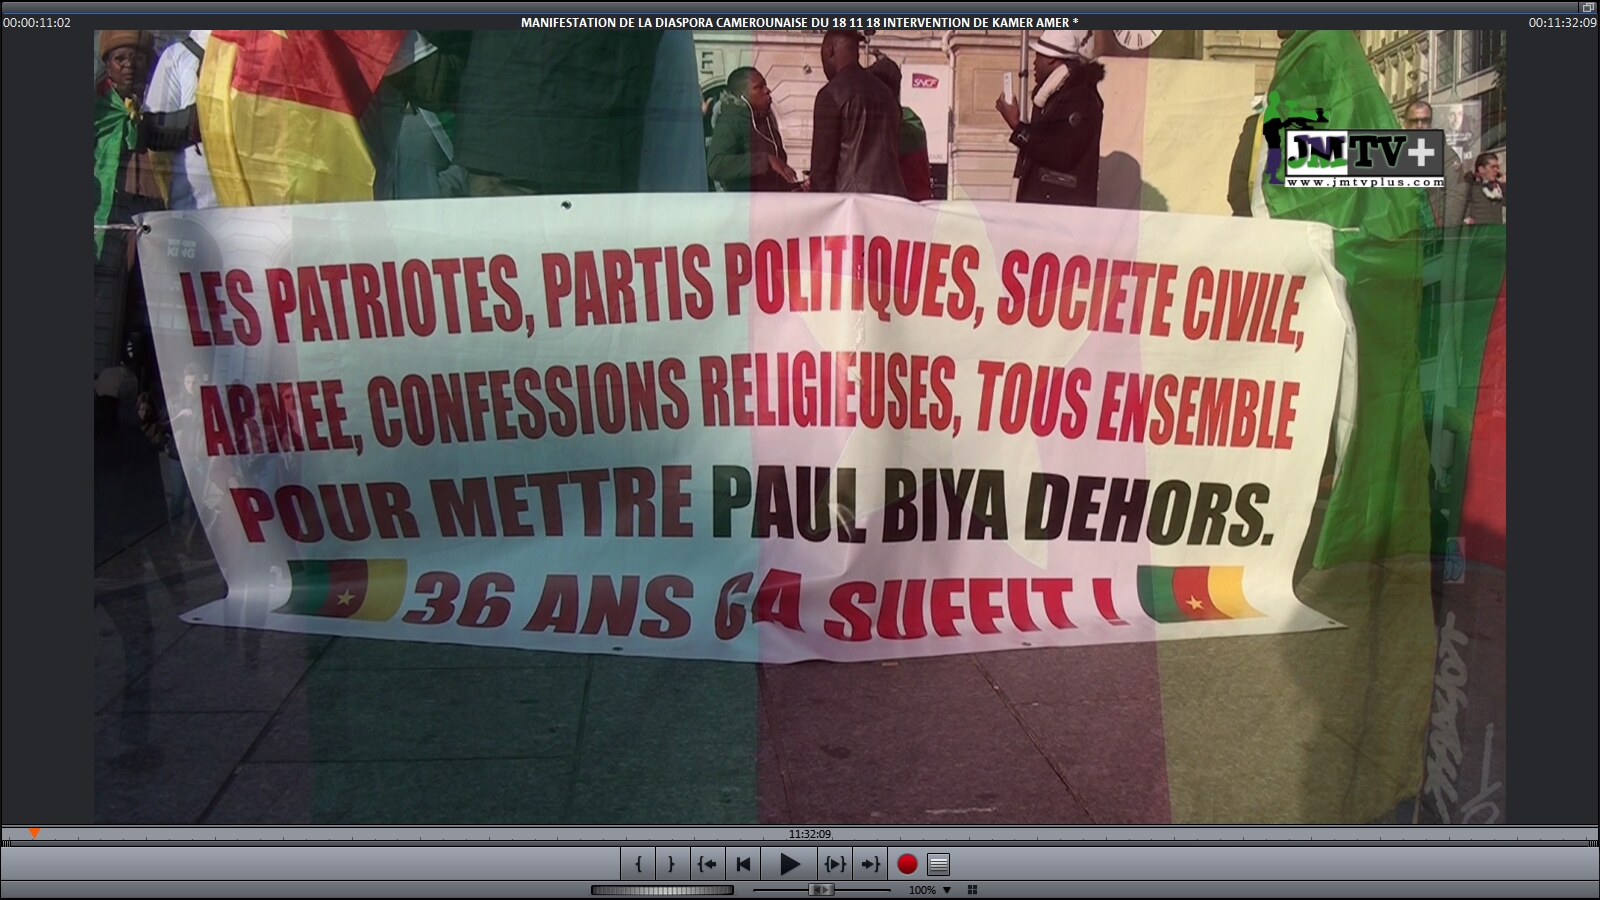 INTERVENTIONS du Gle WANTO & Gervais YOUNKEP à la MANIFESTATION du 18 Nov 2018